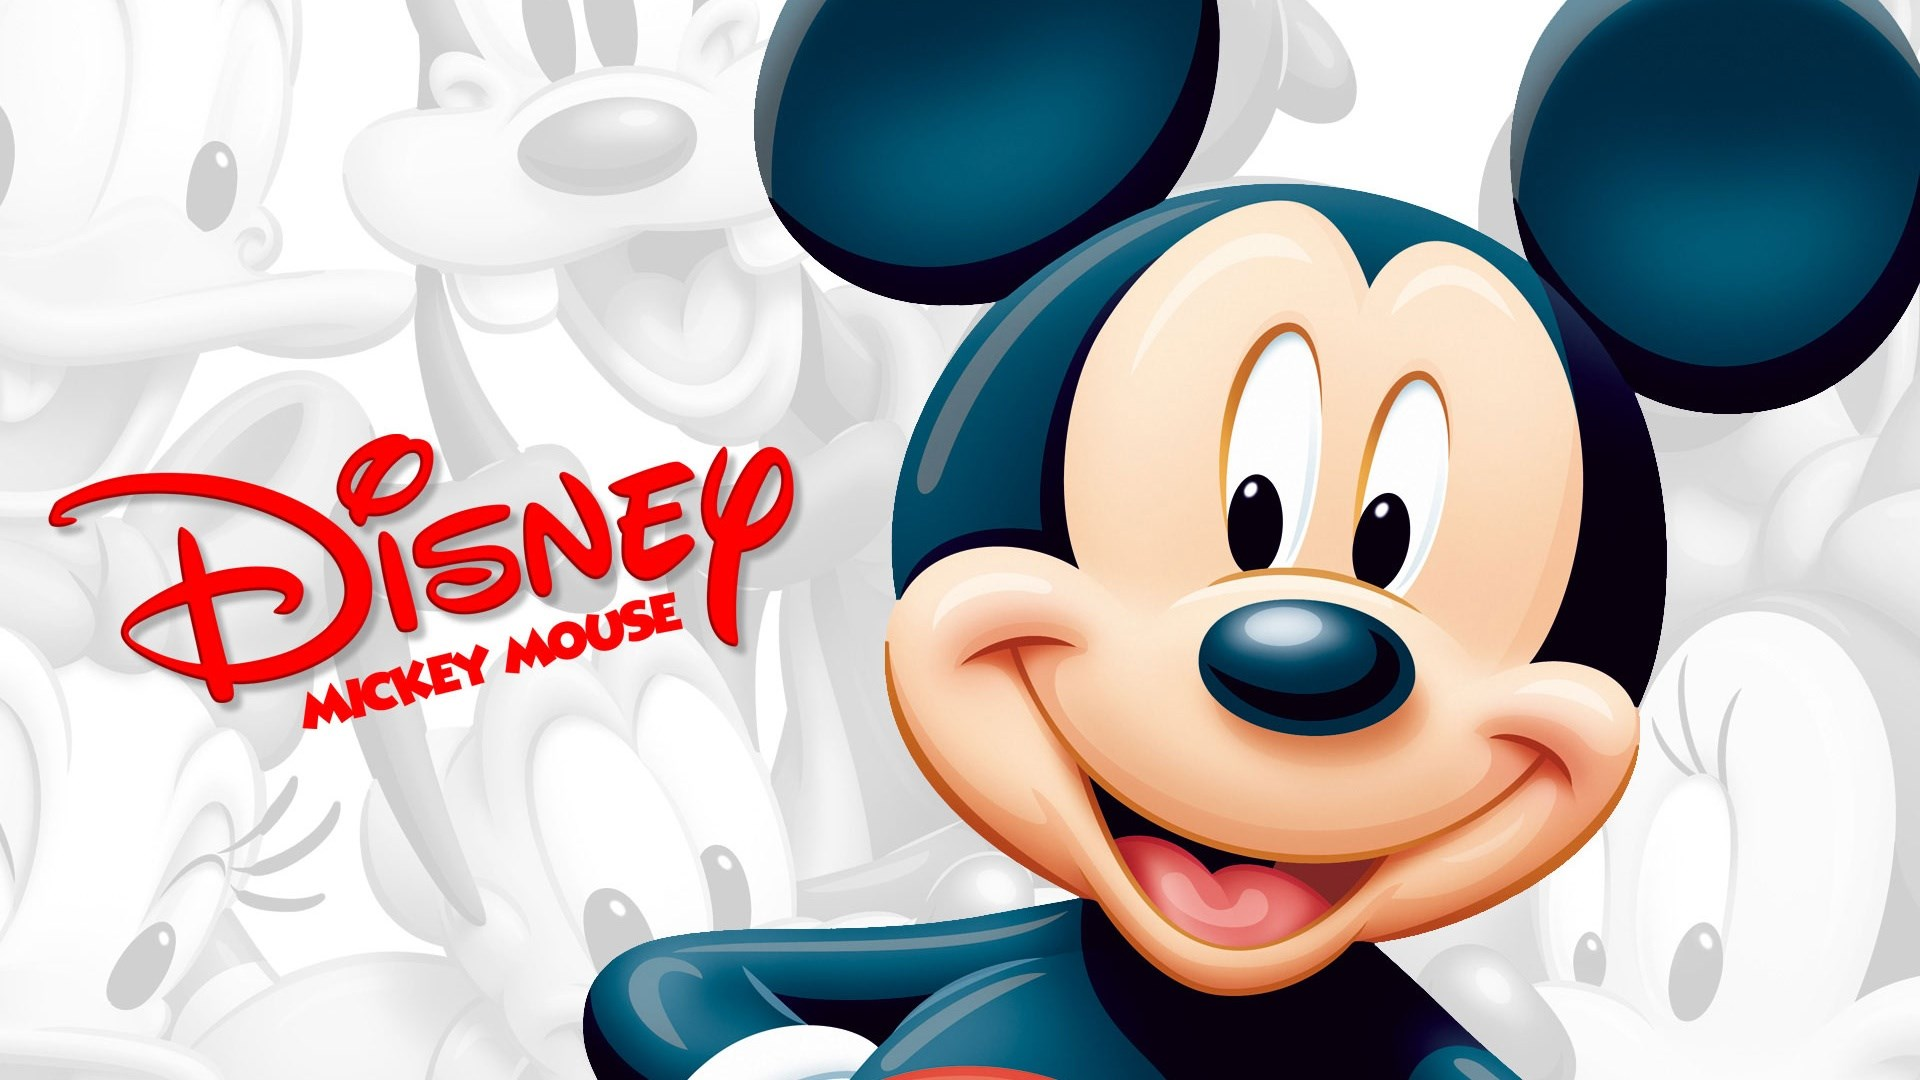 1920x1080-px-images-mickey-mouse-by-Fraser-Bush-for-pocketfullofgrace-com-wallpaper-wp340901